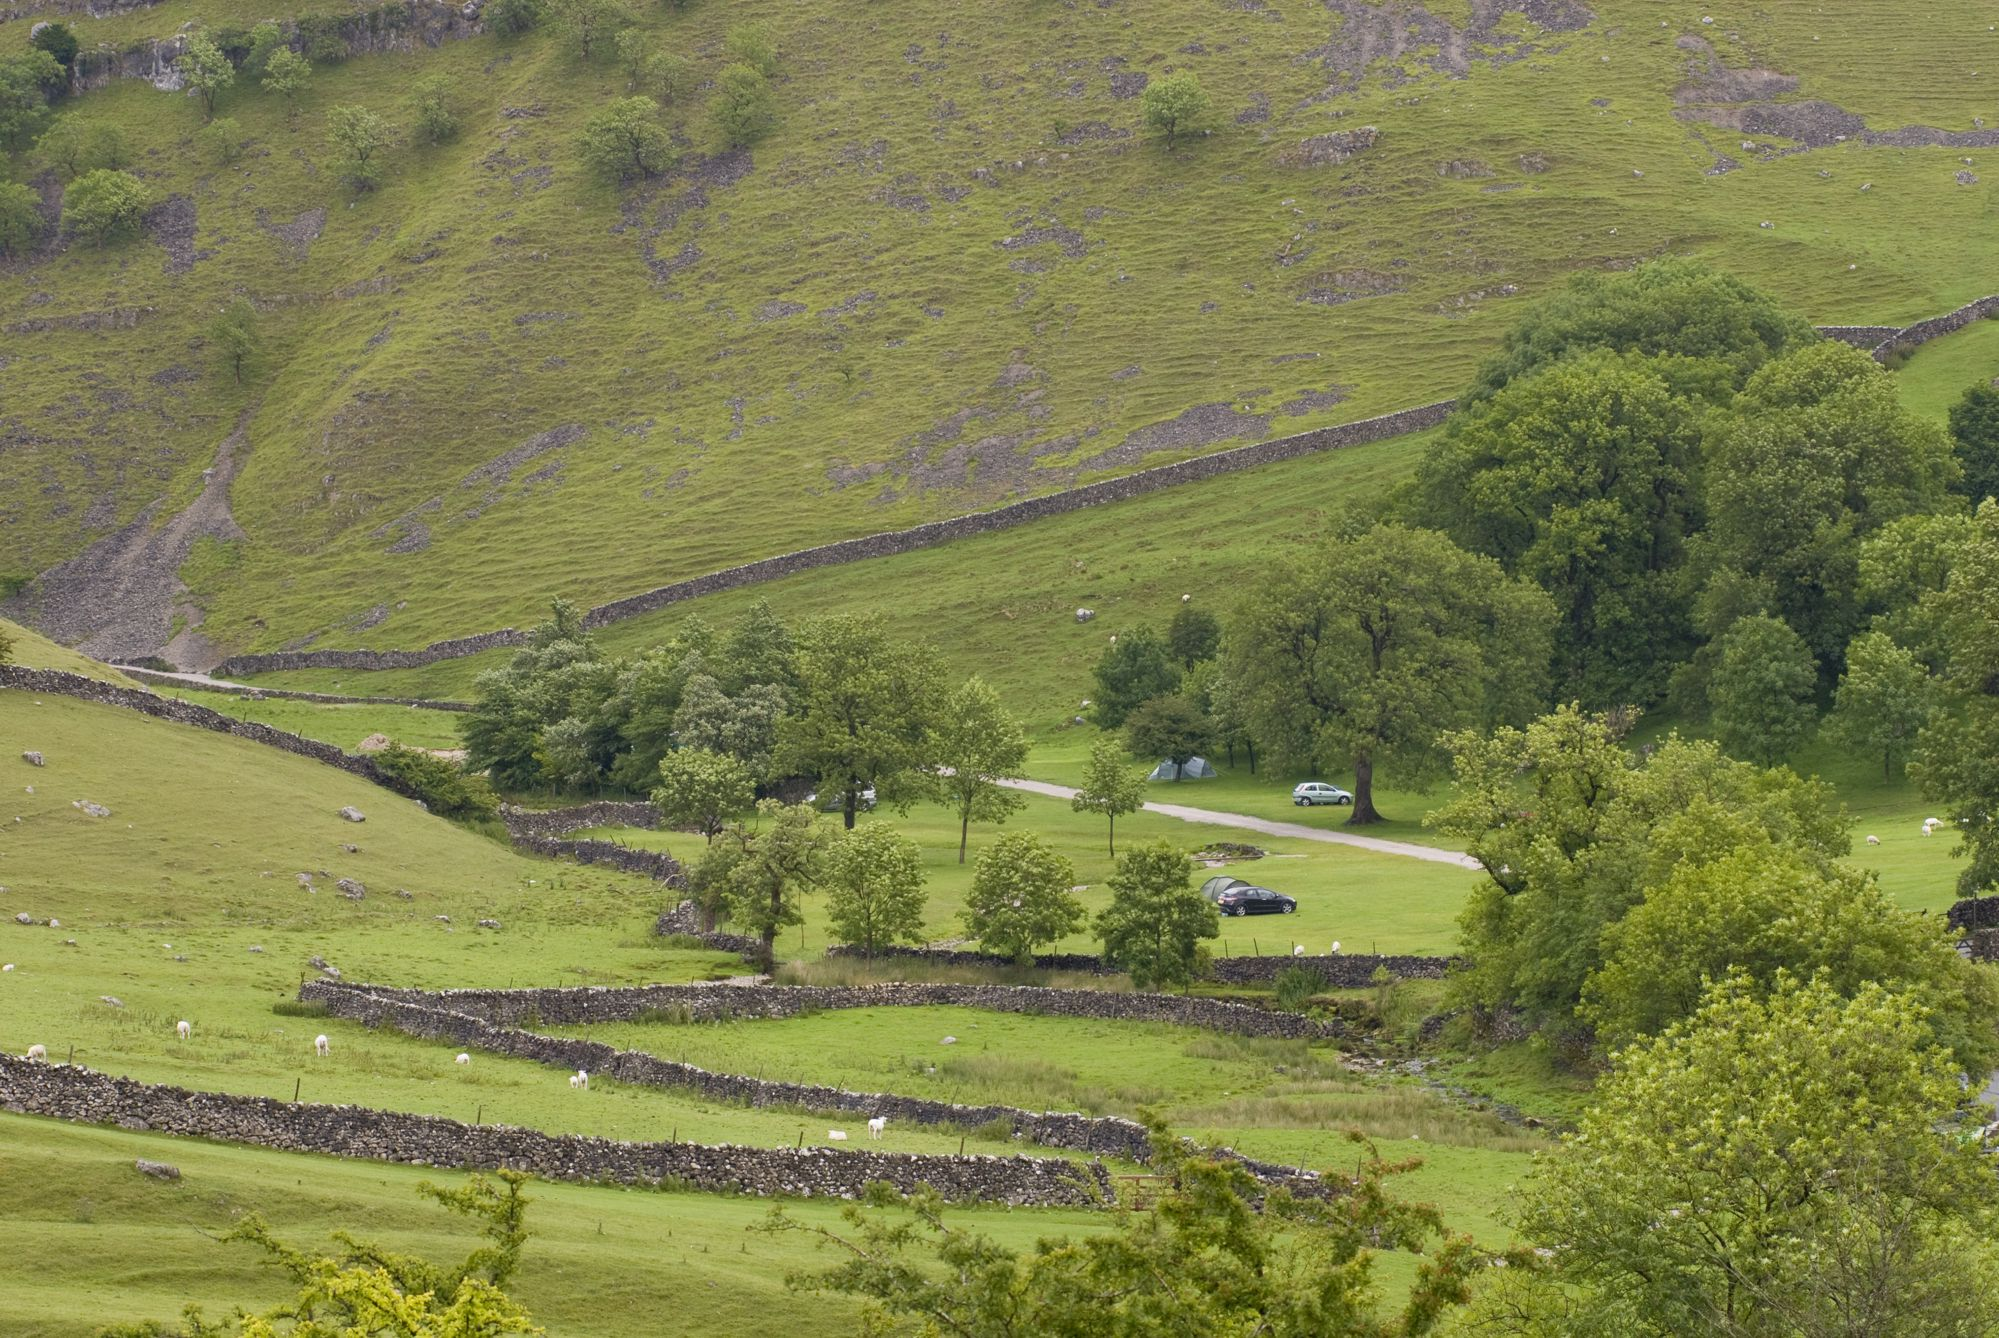 Campsites in Horton-in-Ribblesdale, Yorkshire Dales